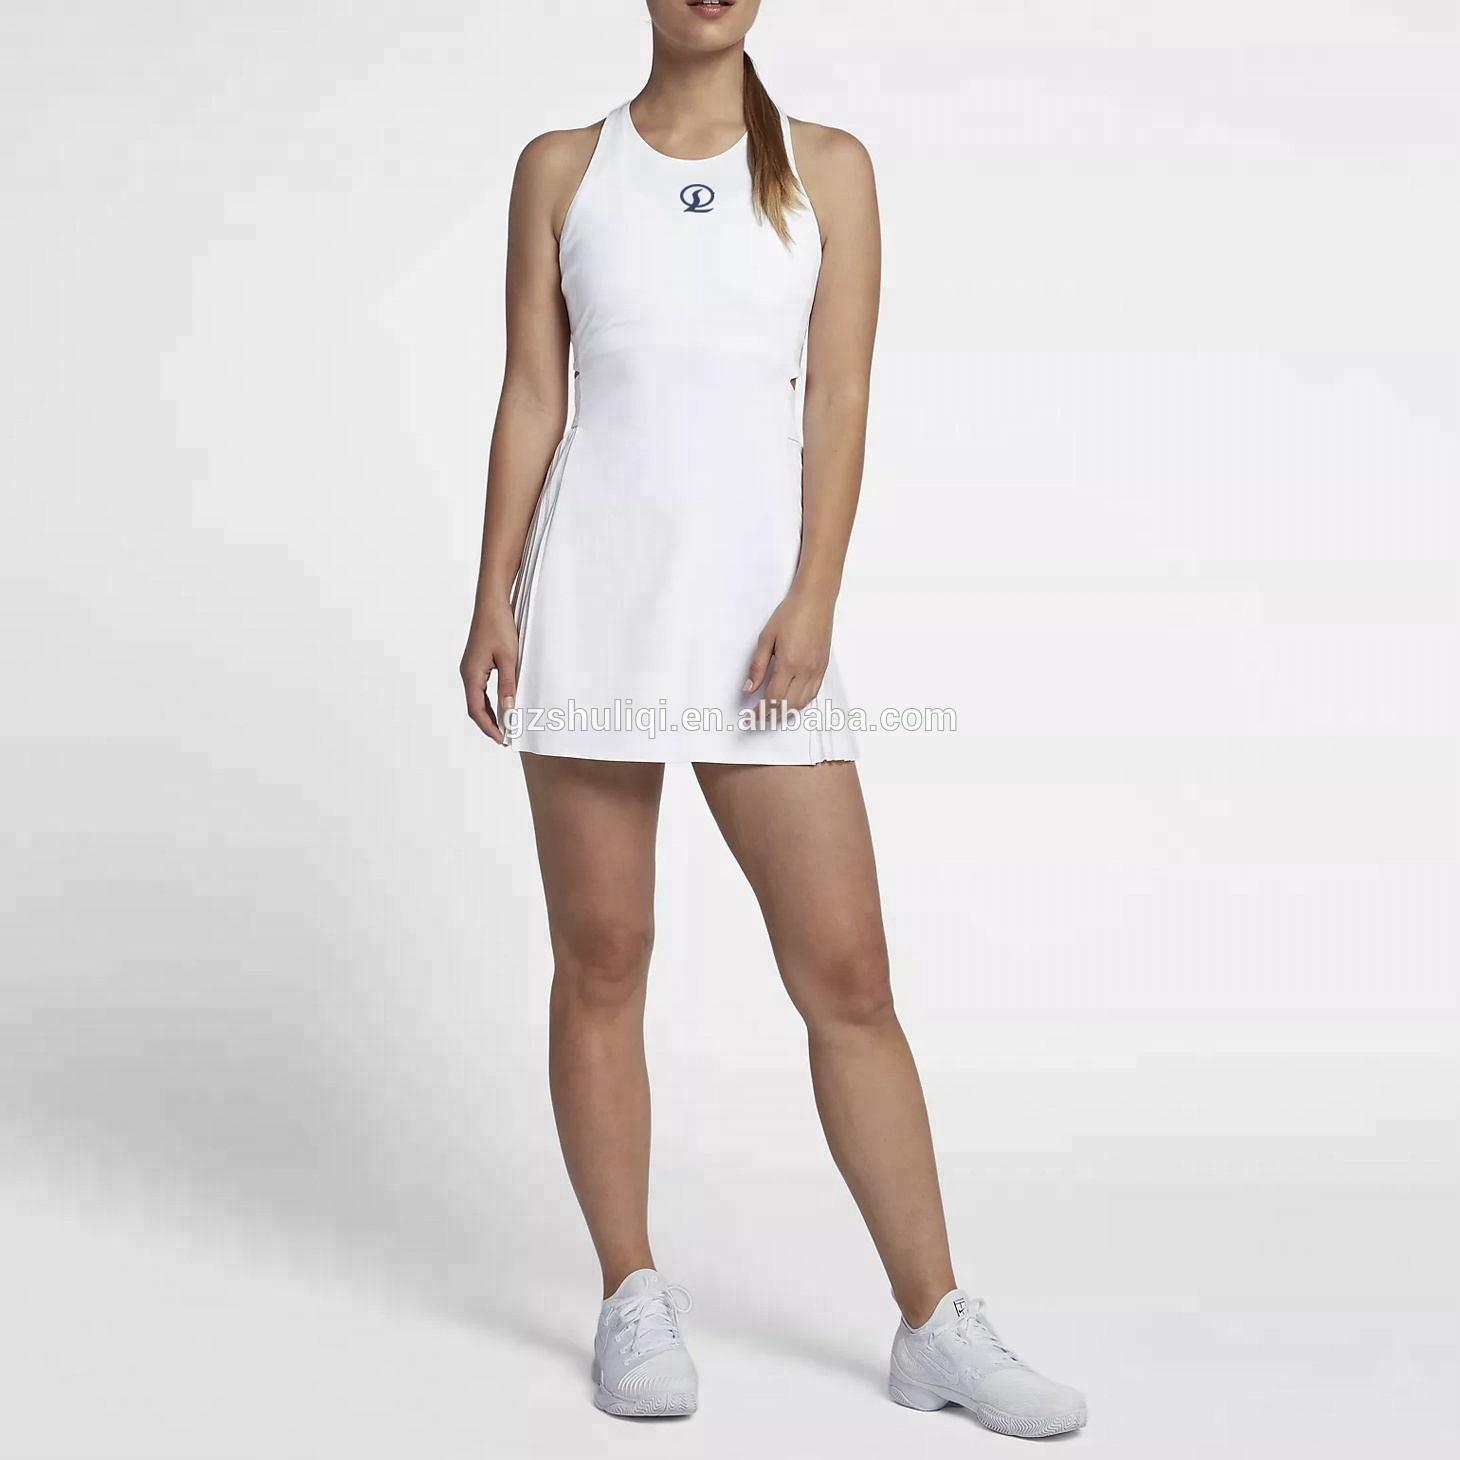 Hot Sales Summer Beautiful Daily Casual Draped Sports Dress With Hollow Out The Waist For Women / Girls SO-33